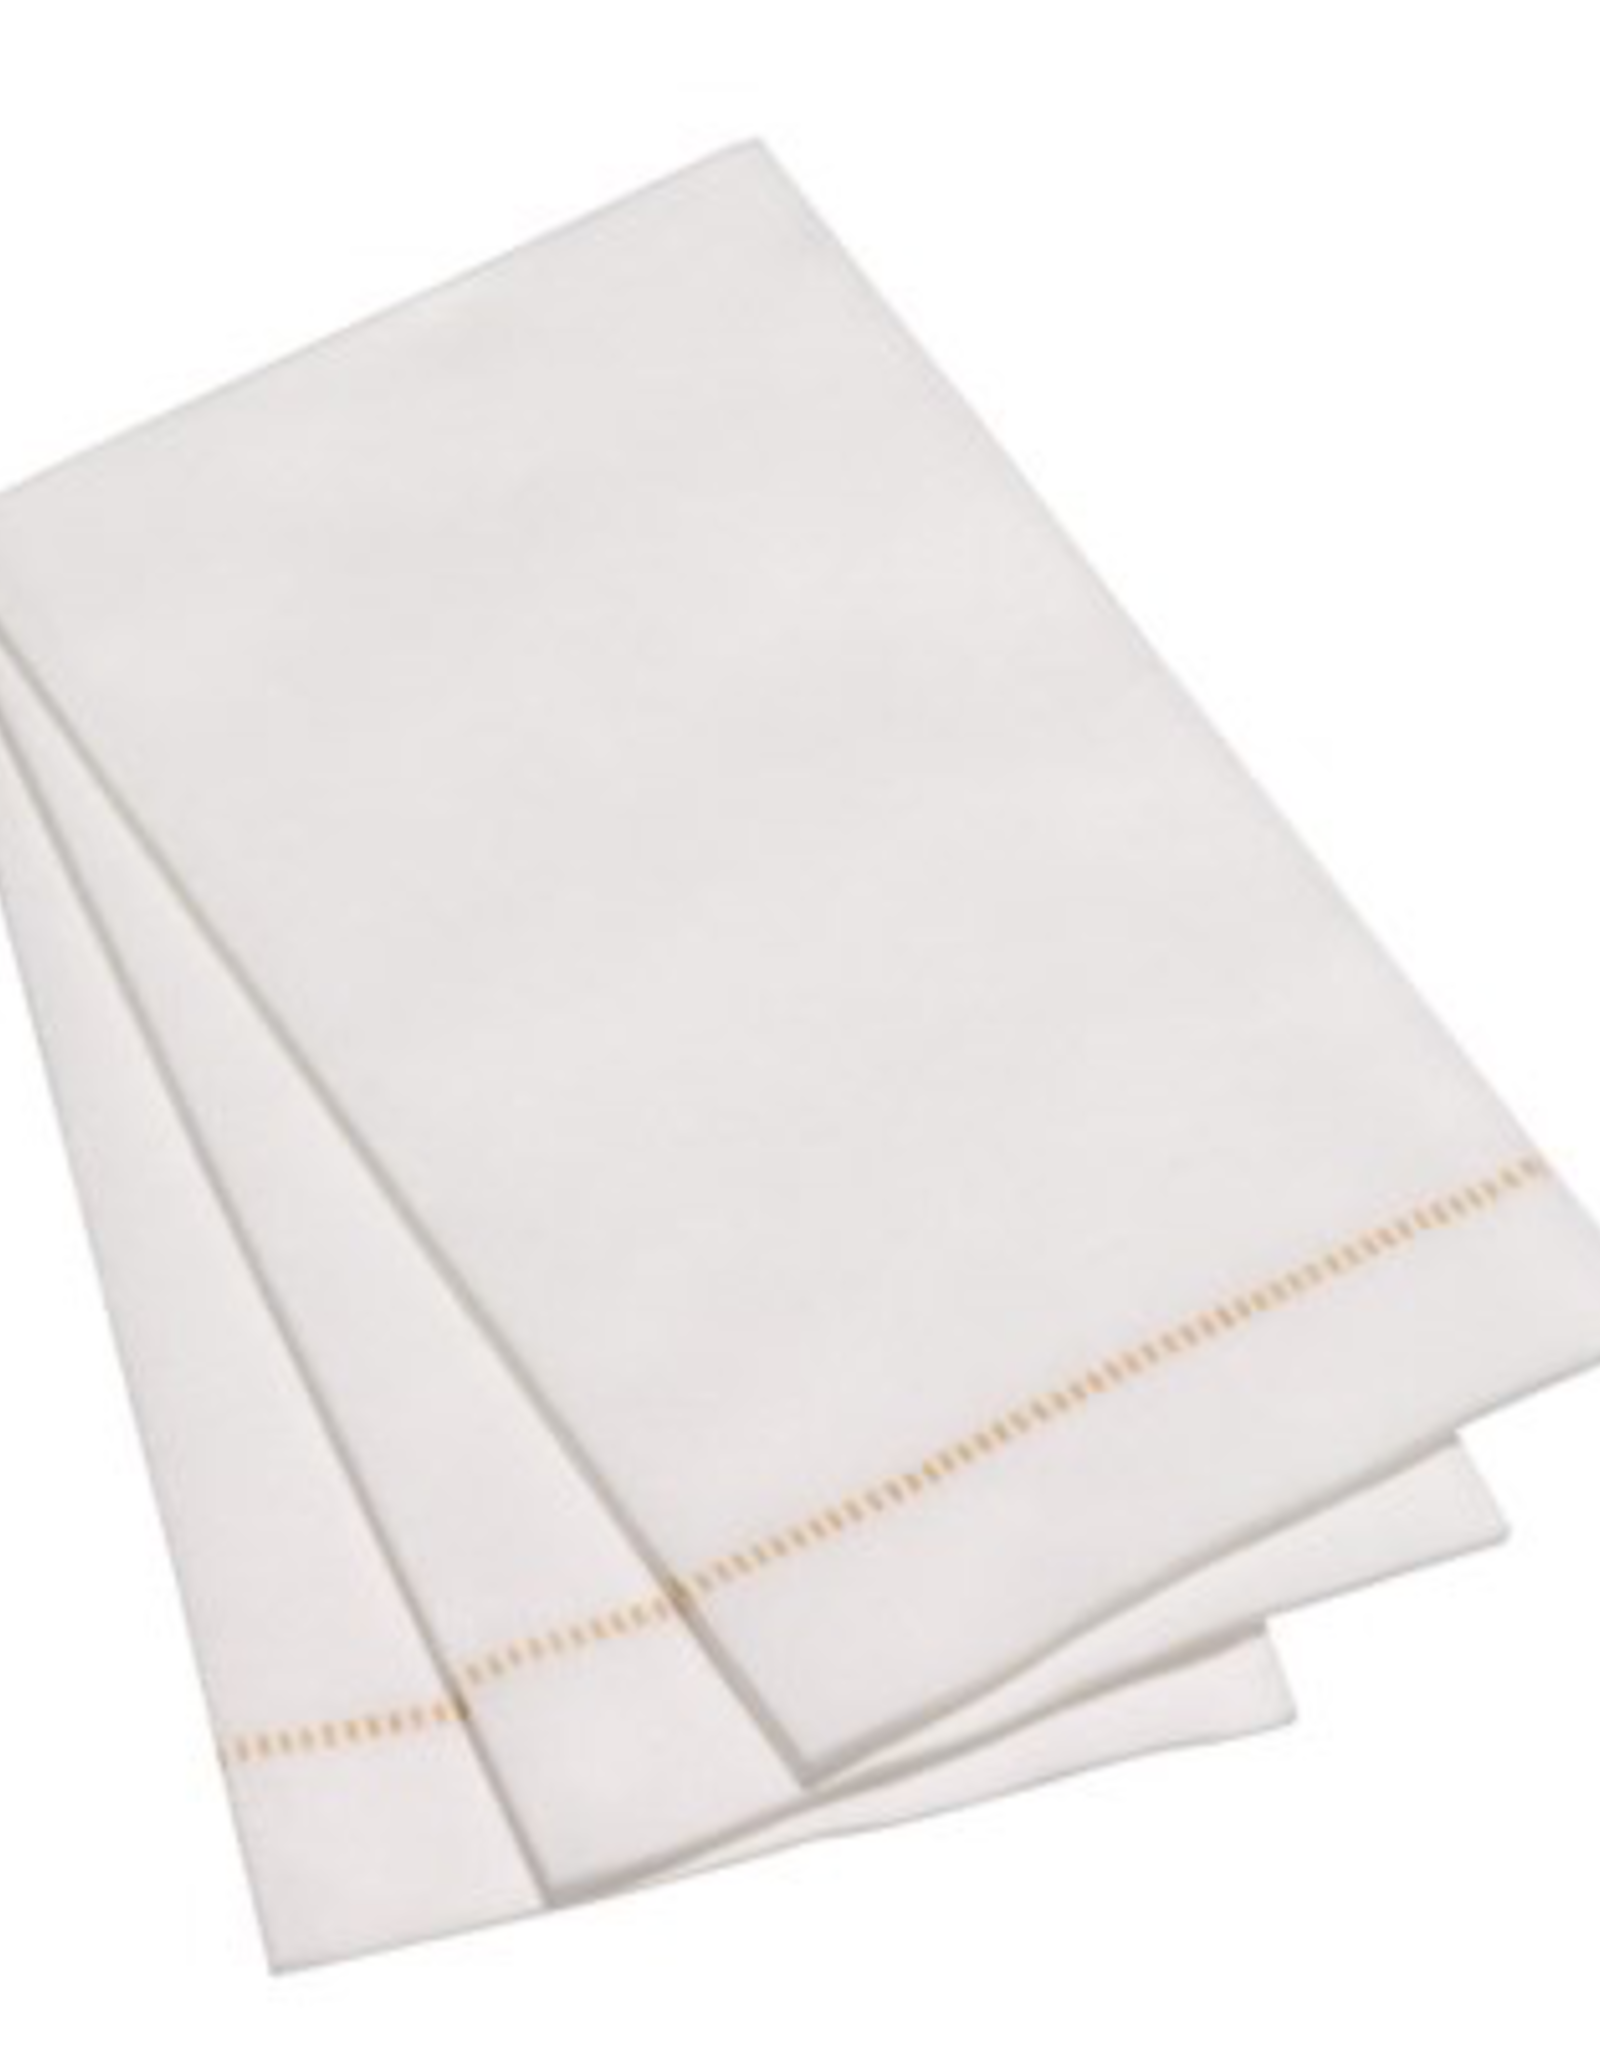 Napkin Guest, Hemstitch Gold, Pack of 15